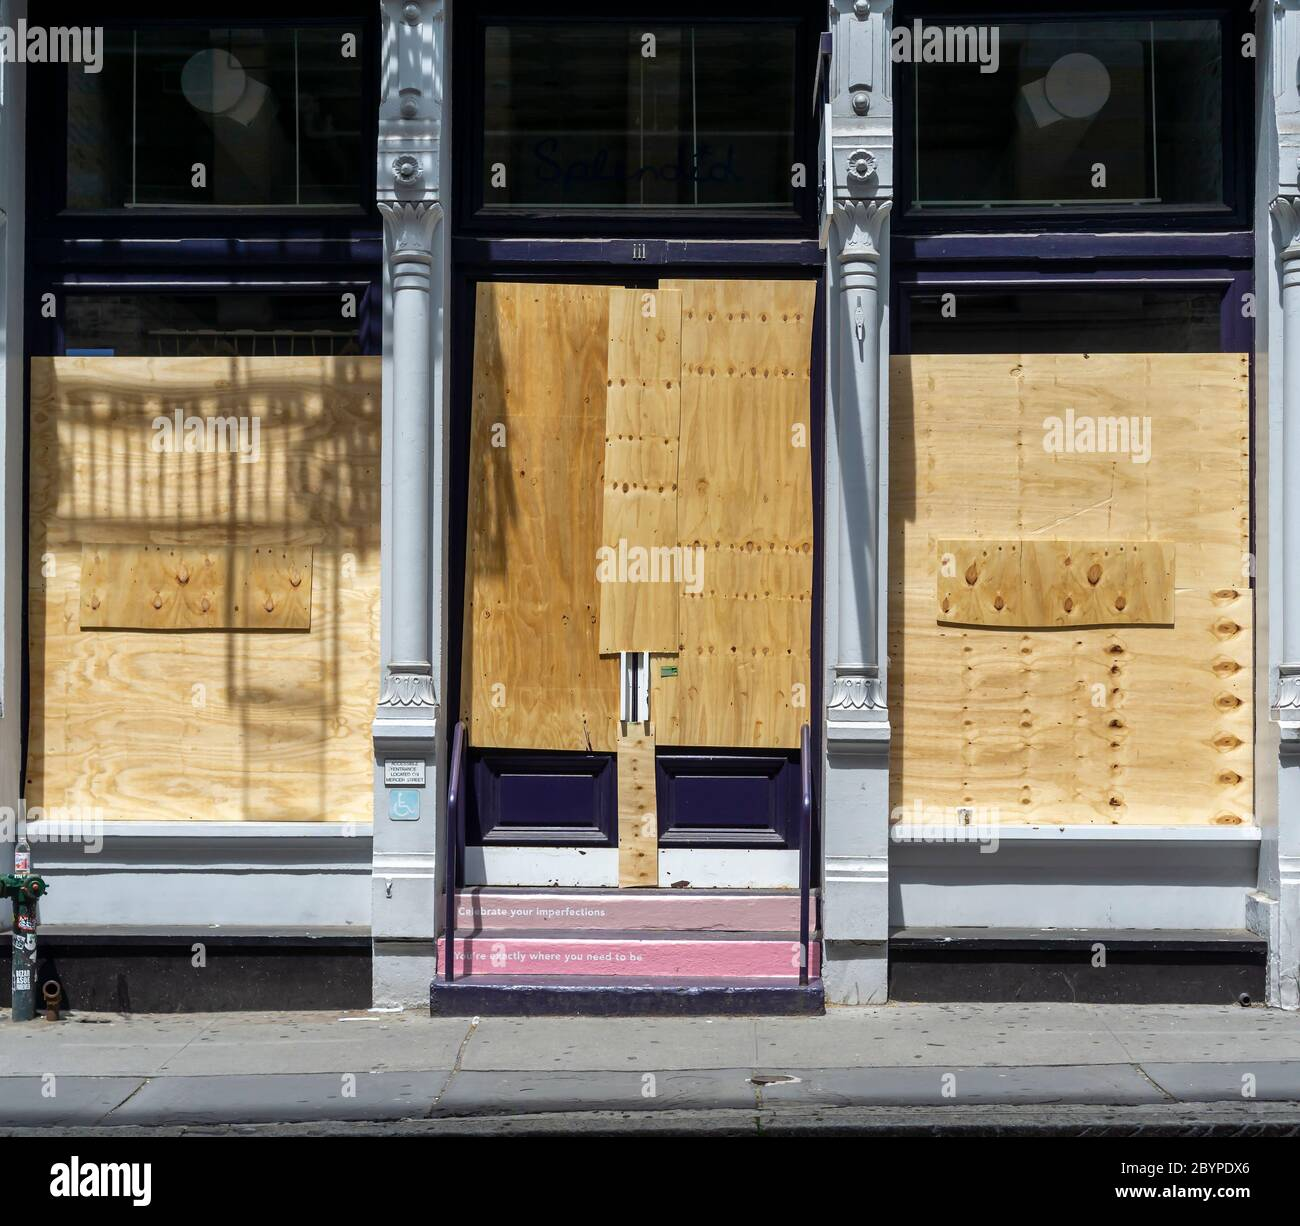 Boutiques and stores in New York are boarded up because of looting and vandalization associated with the protests related to the death of George Floyd, seen on Saturday, June 6, 2020. (© Richard B. Levine) Stock Photo